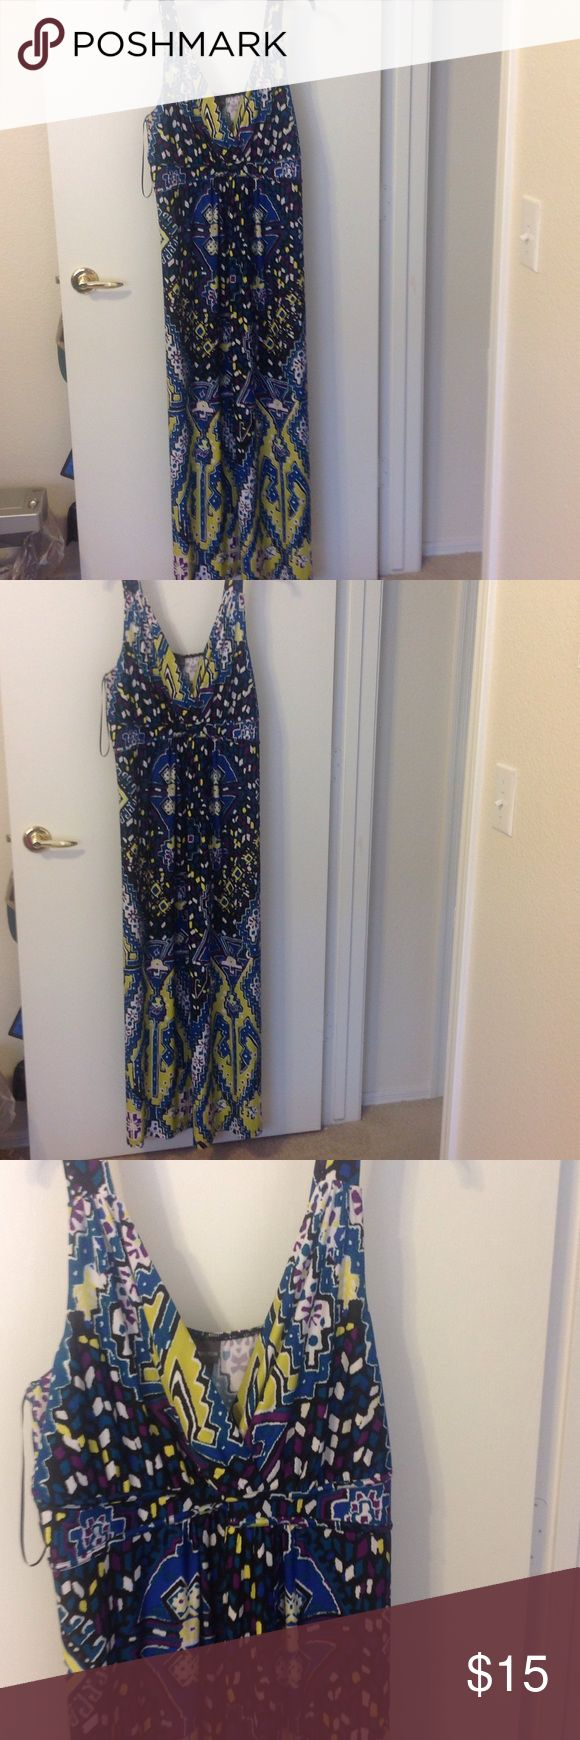 TODAY ONLY $10 Maxi dress Blue, green purple and white maxi dress. New but no tags. Crisscrossing buttocks. Covington Dresses Maxi